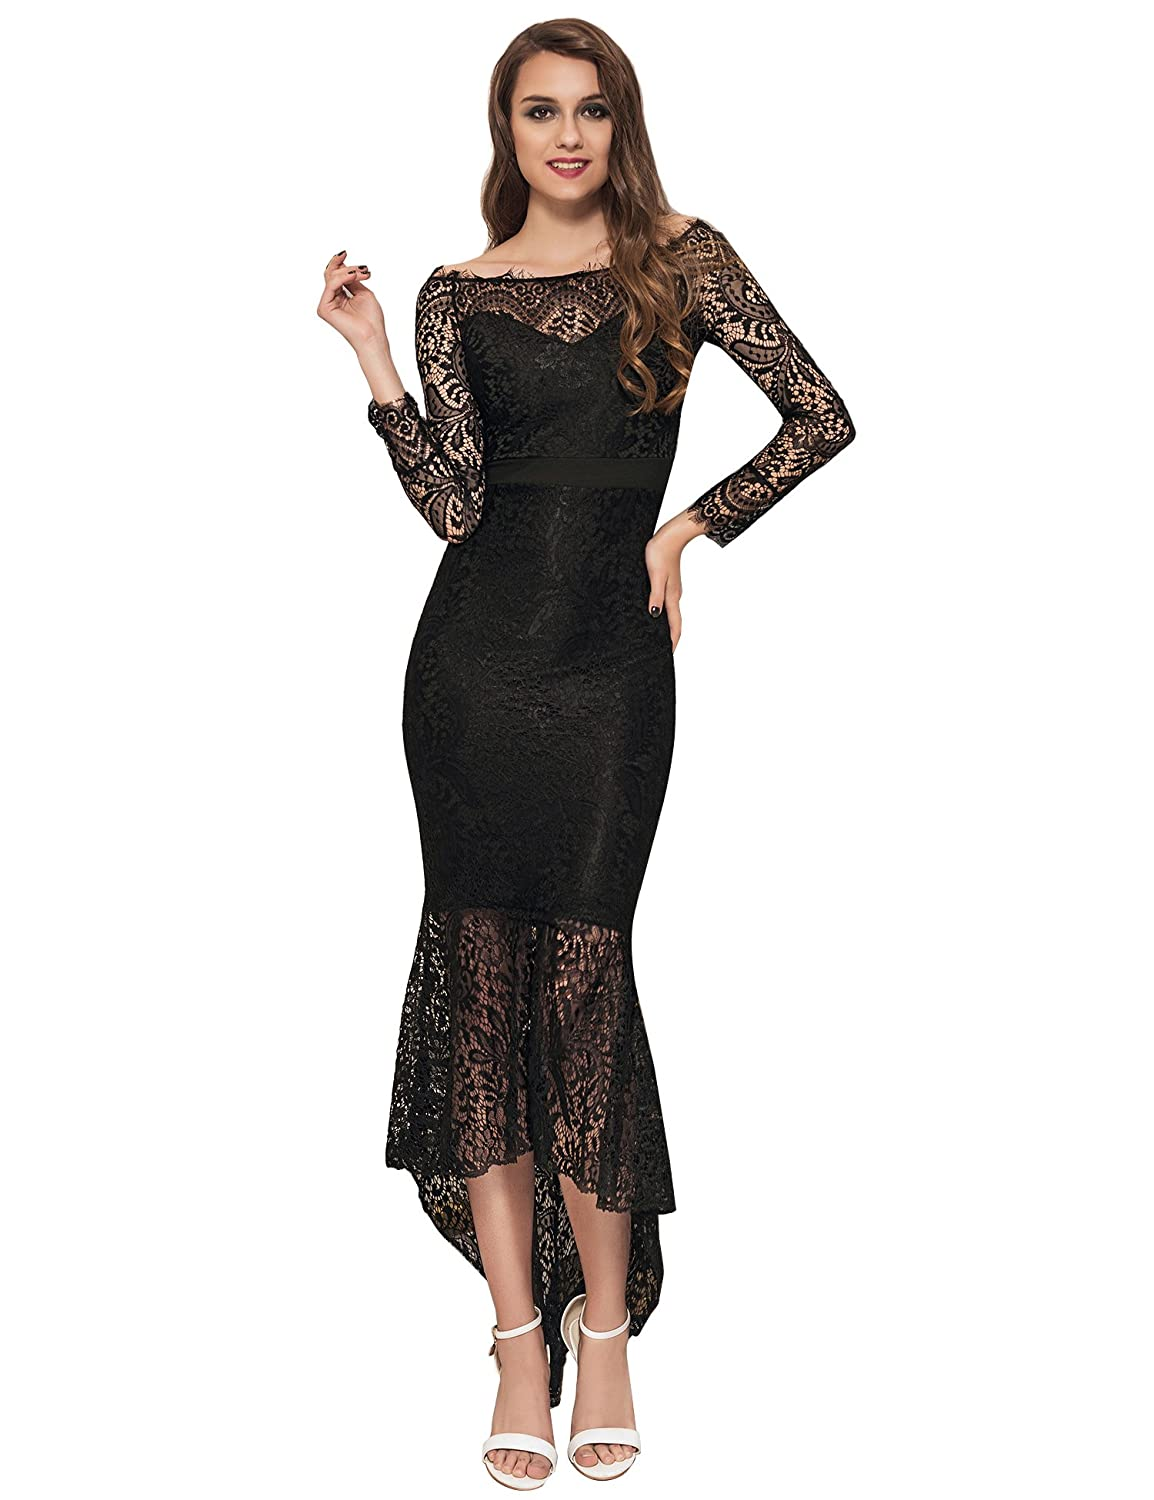 060289c05058 Amazon.com: ohyeah Women Solid Formal Lace Maxi Dress Long Sleeve Off  Shoulder Elegant Party Gown Mermaid Dress: Clothing